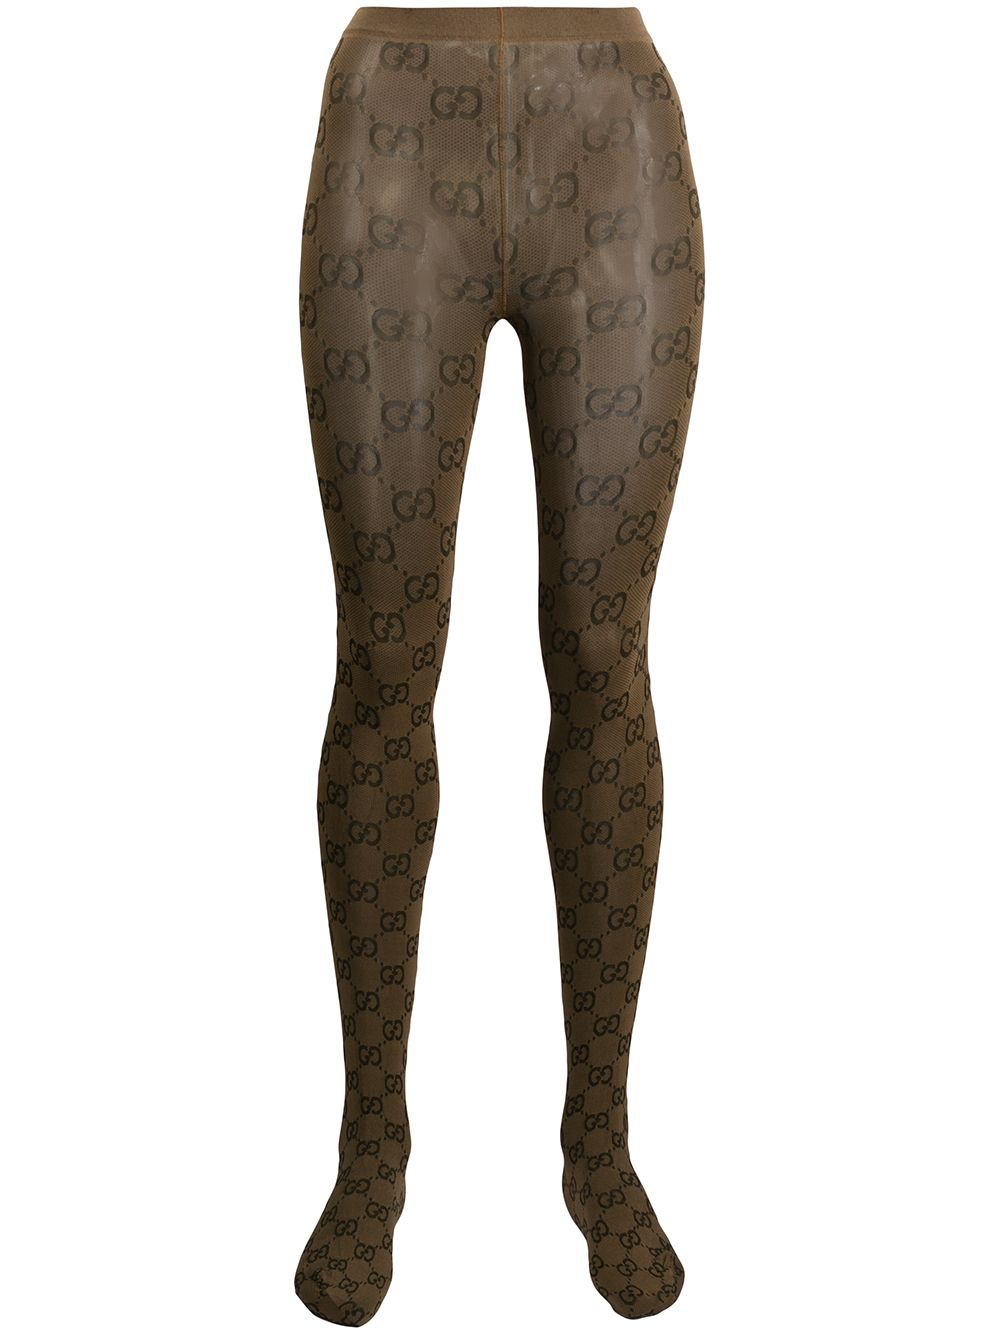 Gg Pattern Tights